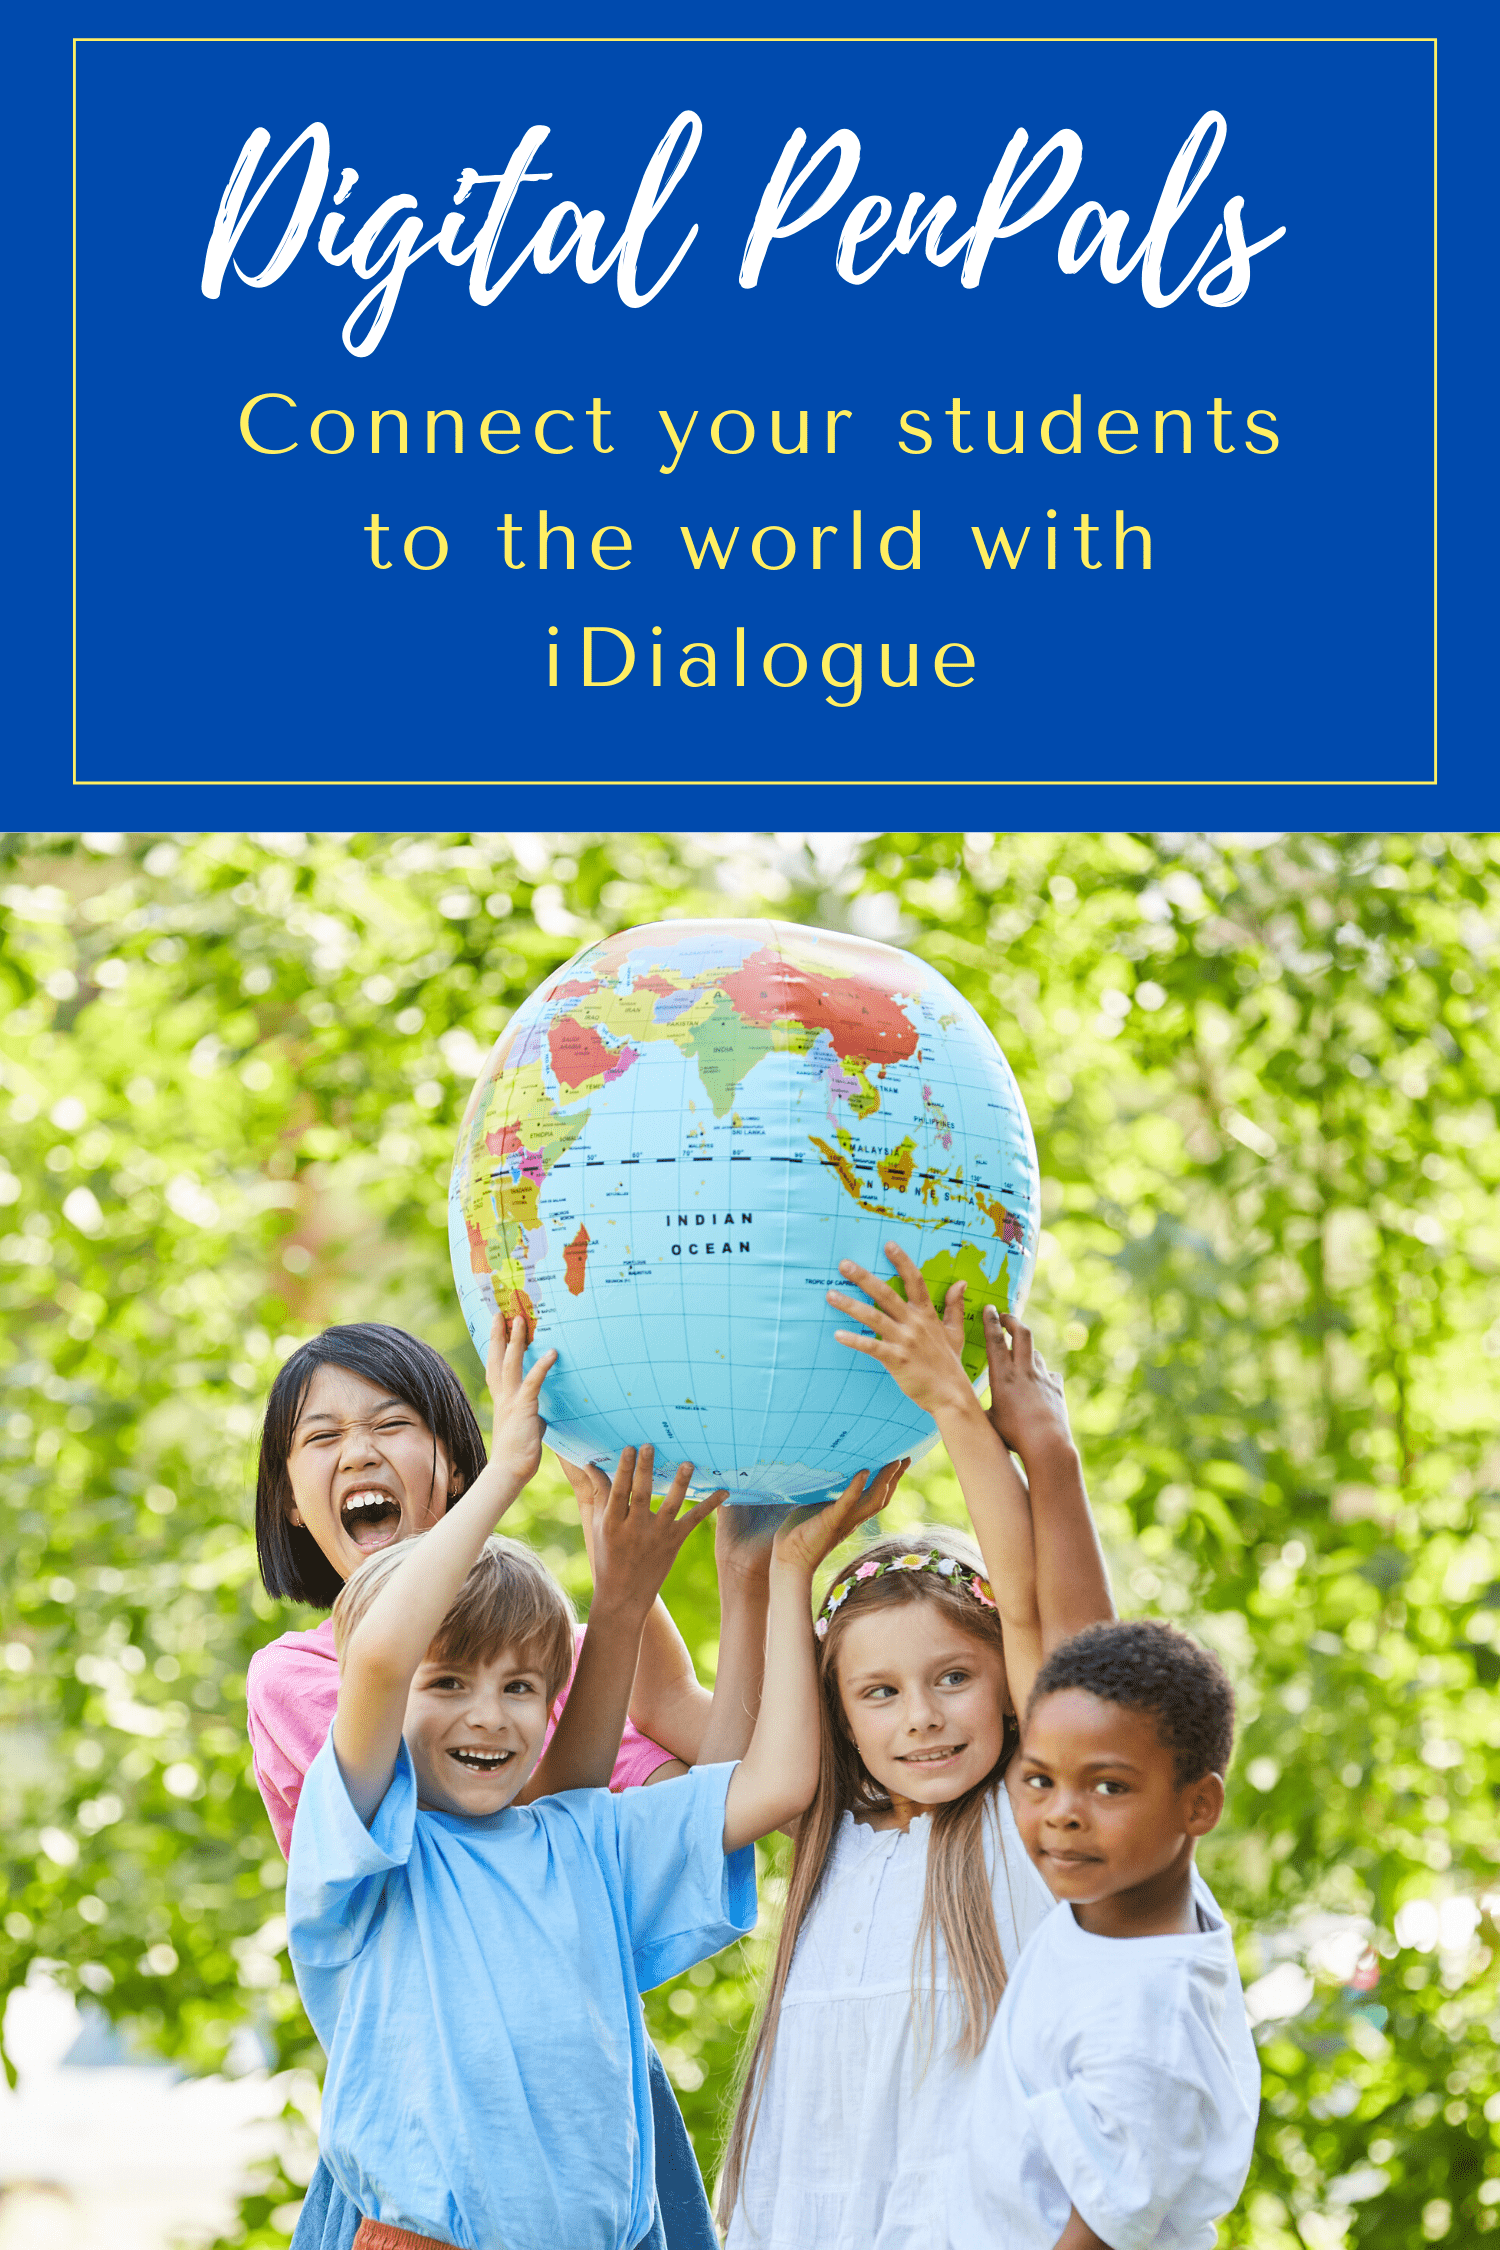 iDialogue is an online ecosystem for collaborative learning, language practice and cross-cultural communication for student language immersion.